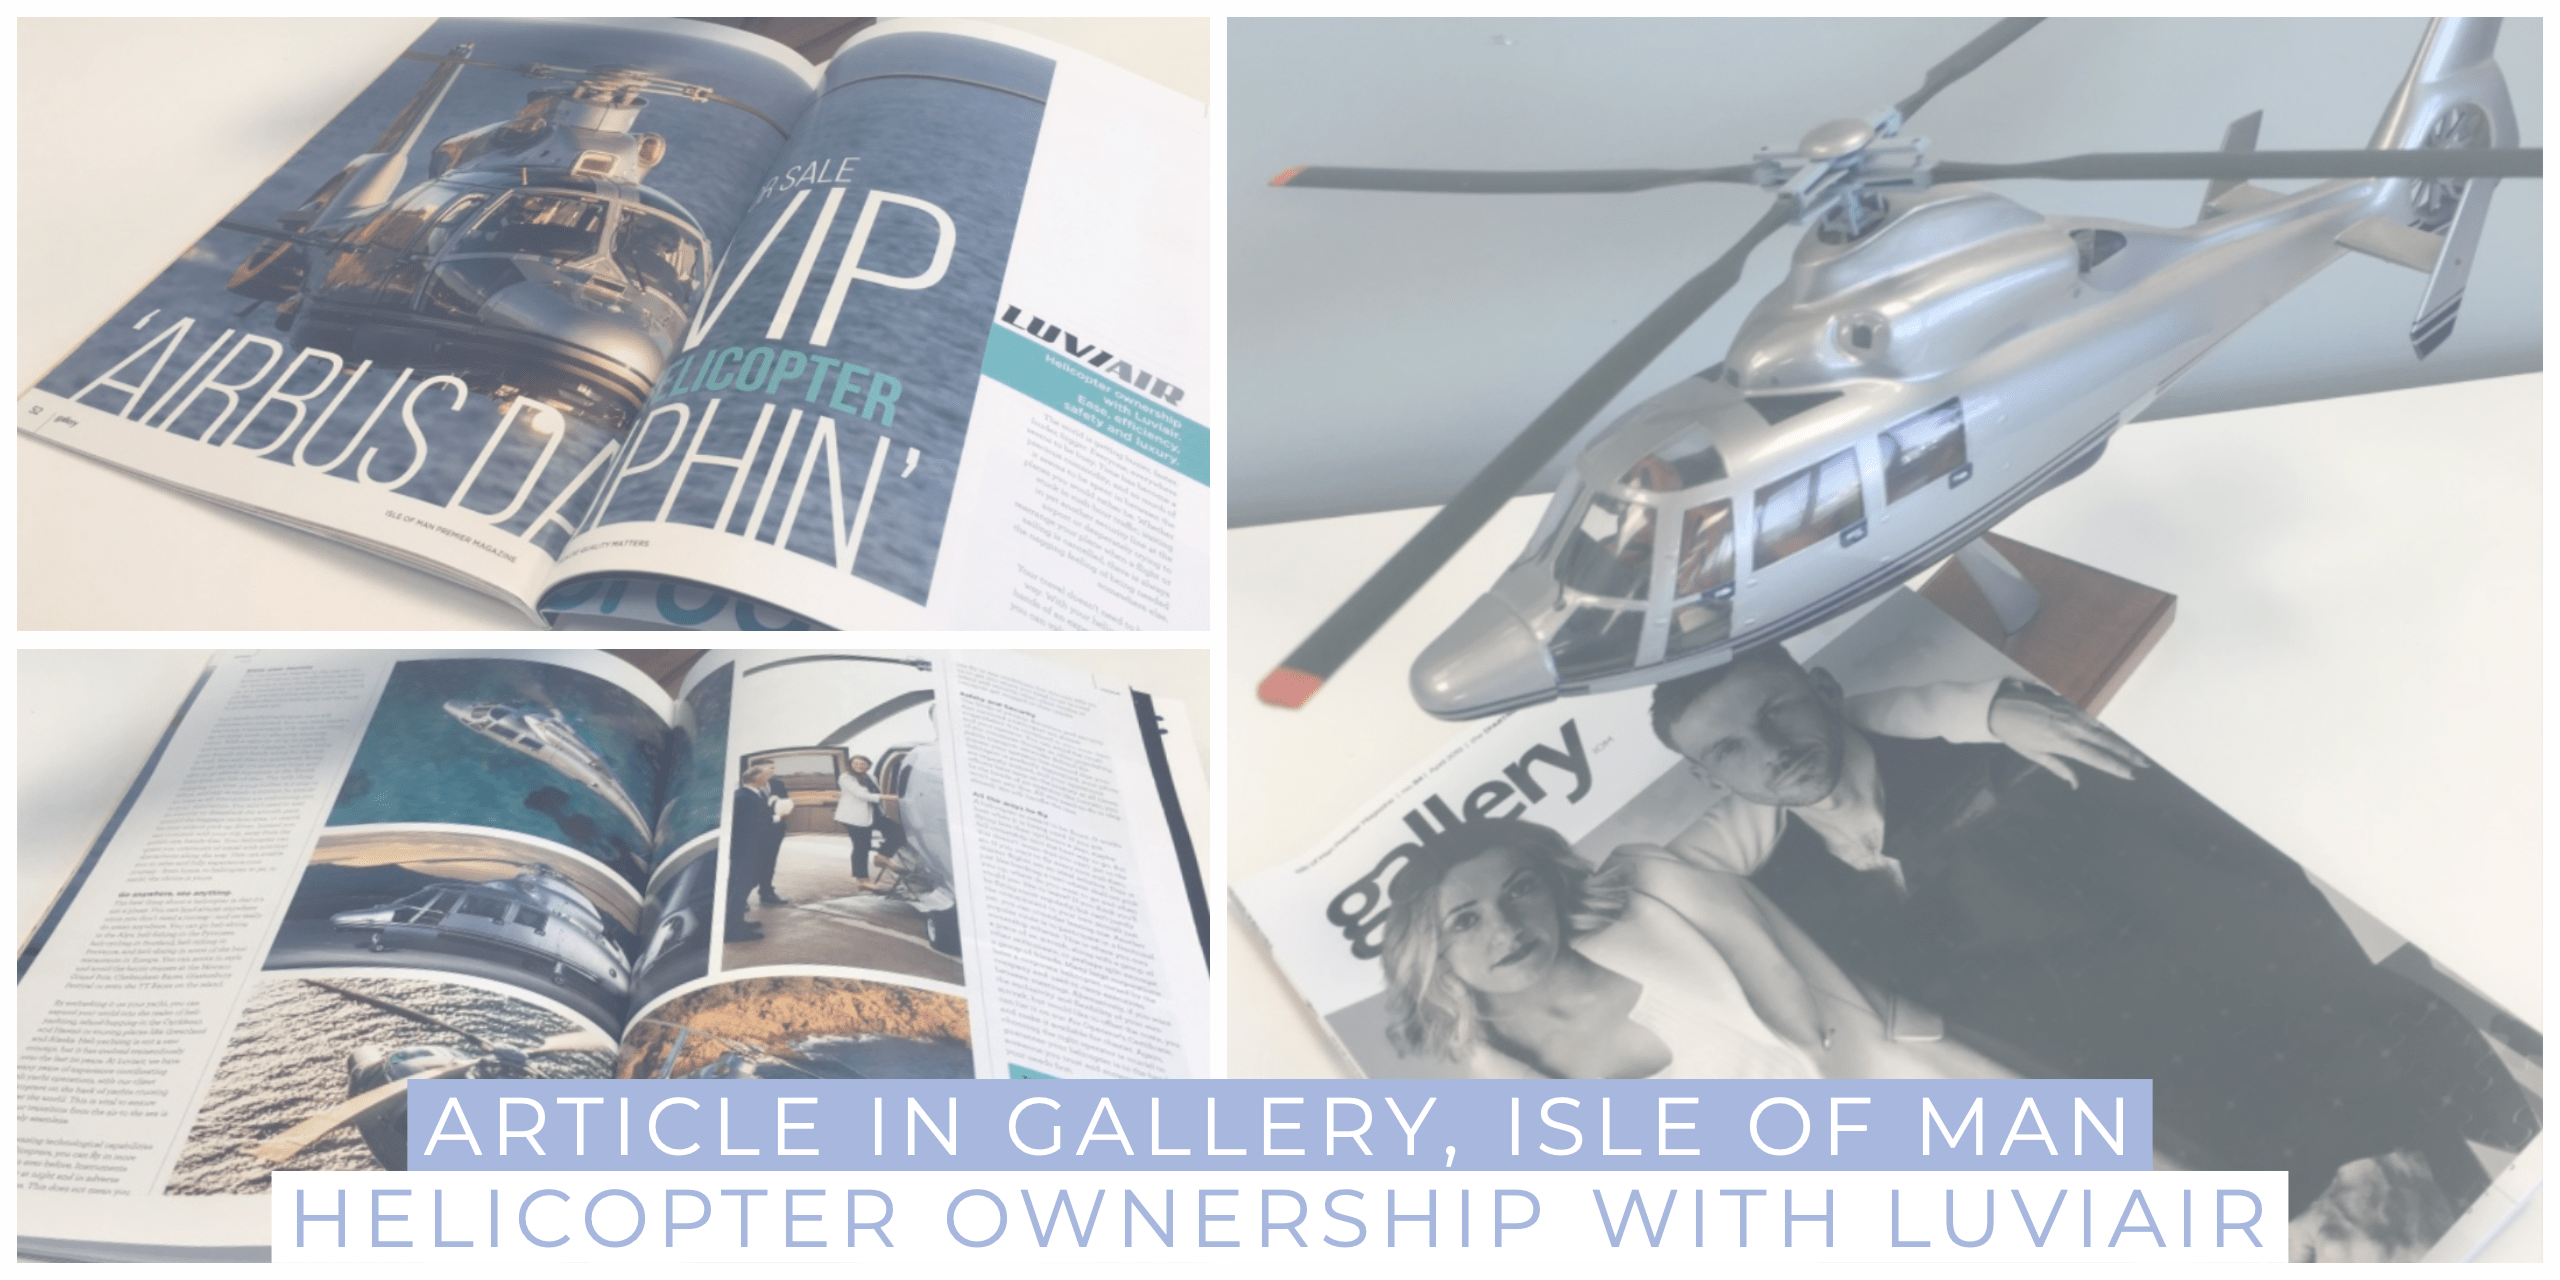 Helicopter Ownership with Luviair : Article in Gallery Magazine, Isle of Man